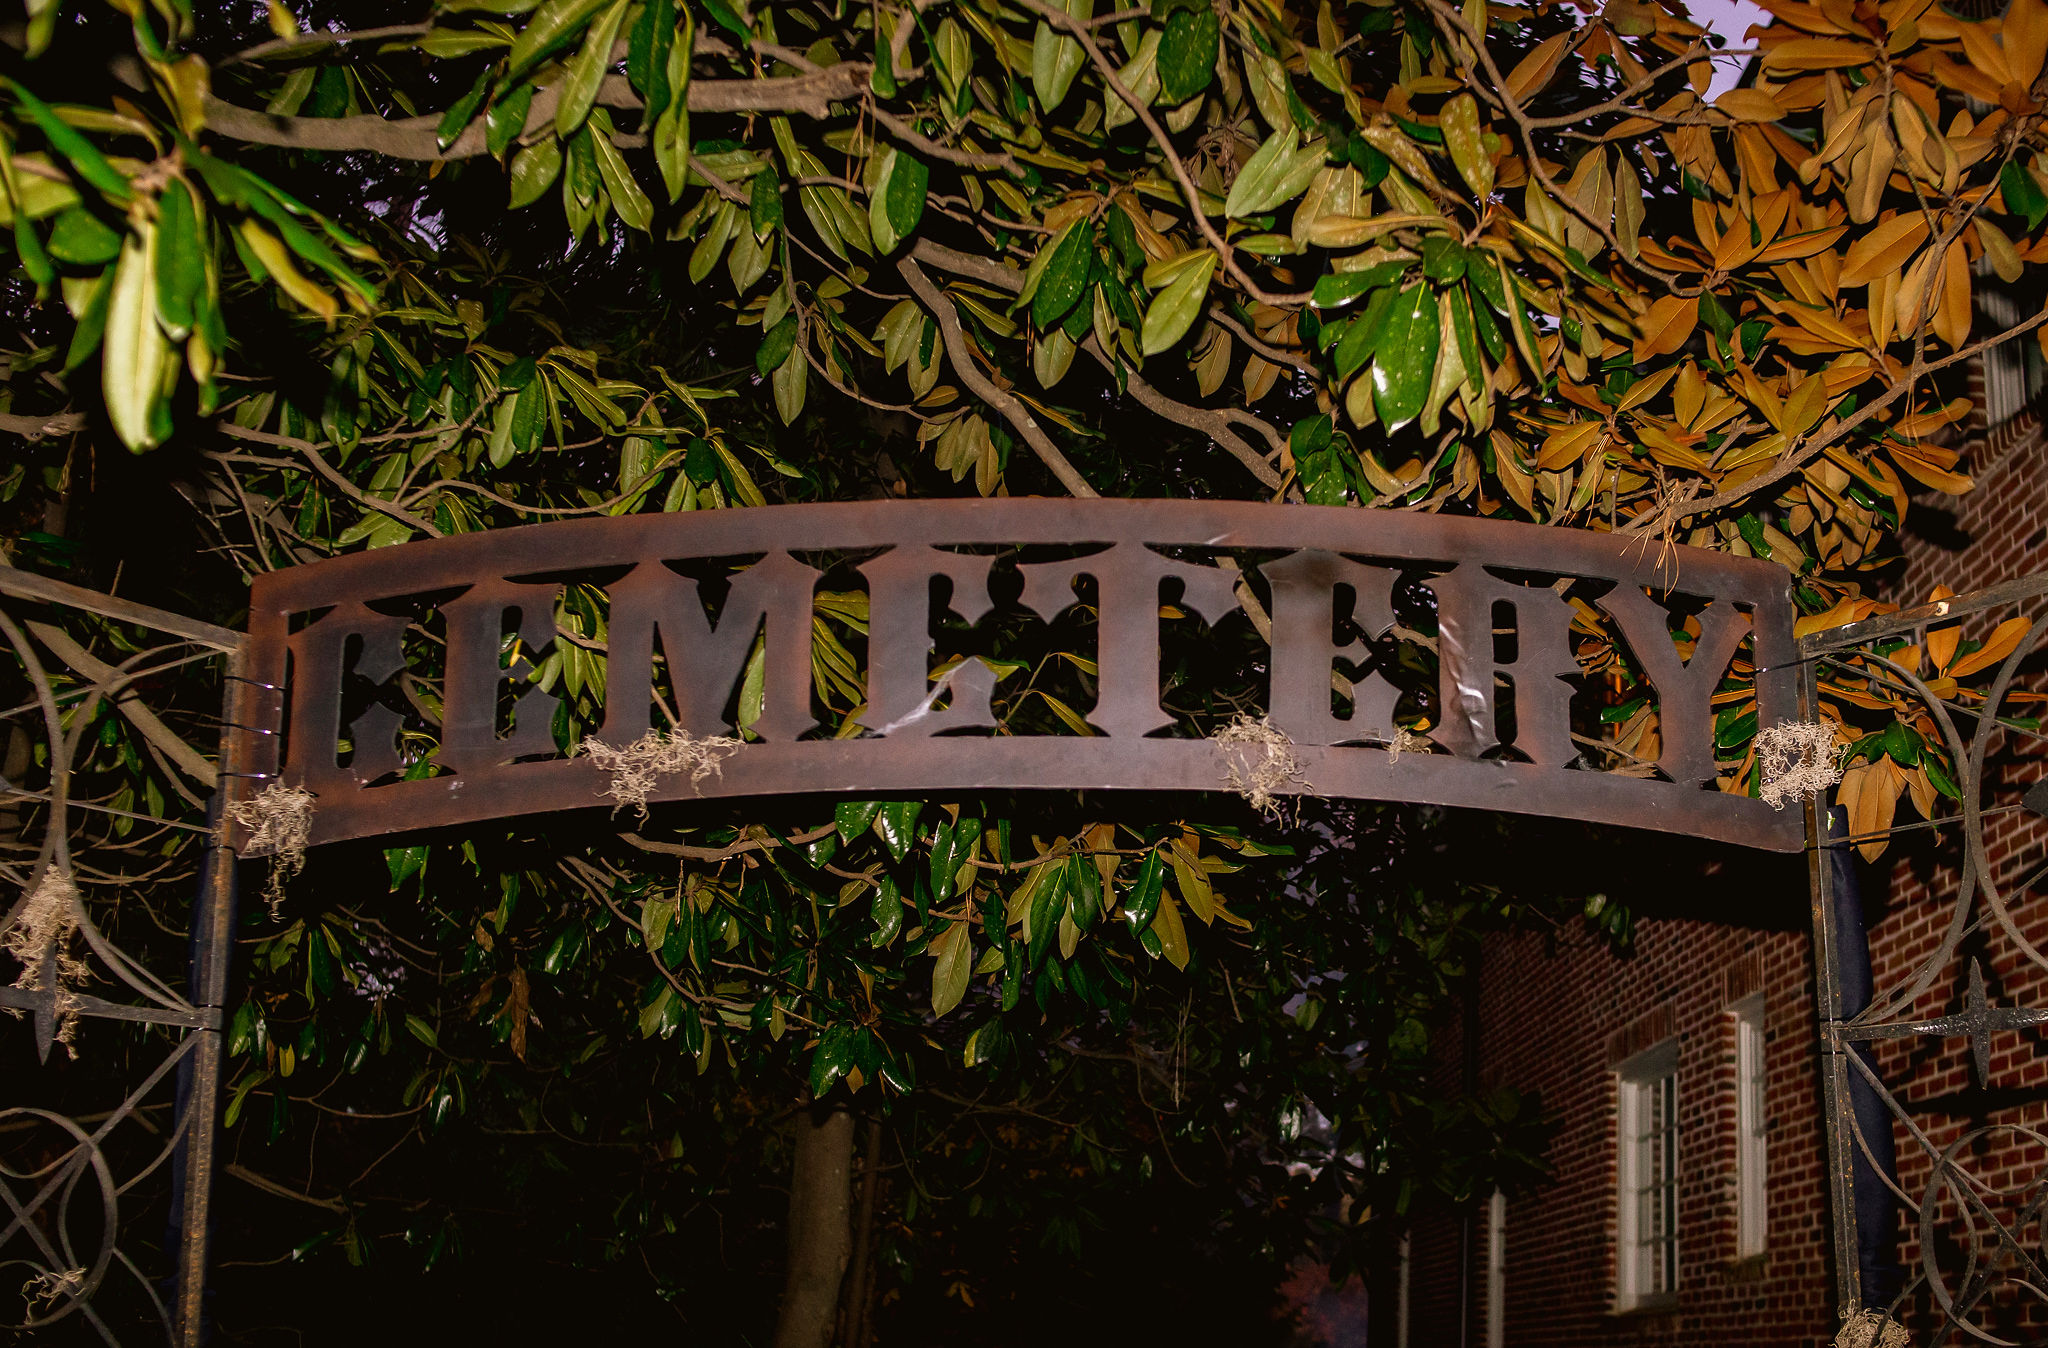 Halloween party iron cemetery sign under magnolia tree